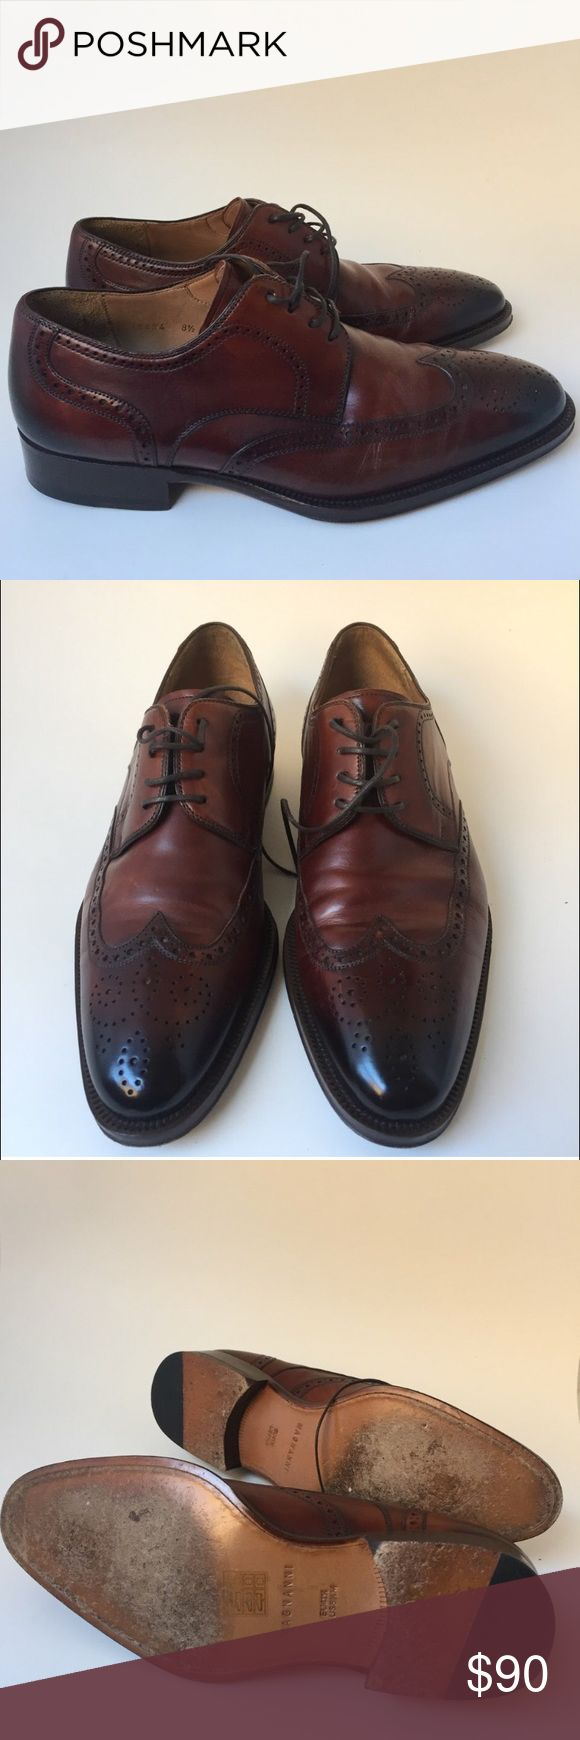 Magnanni Leather Wing Tip Oxfords Magnanni Leather Wing Tip Oxfords. Men's U...